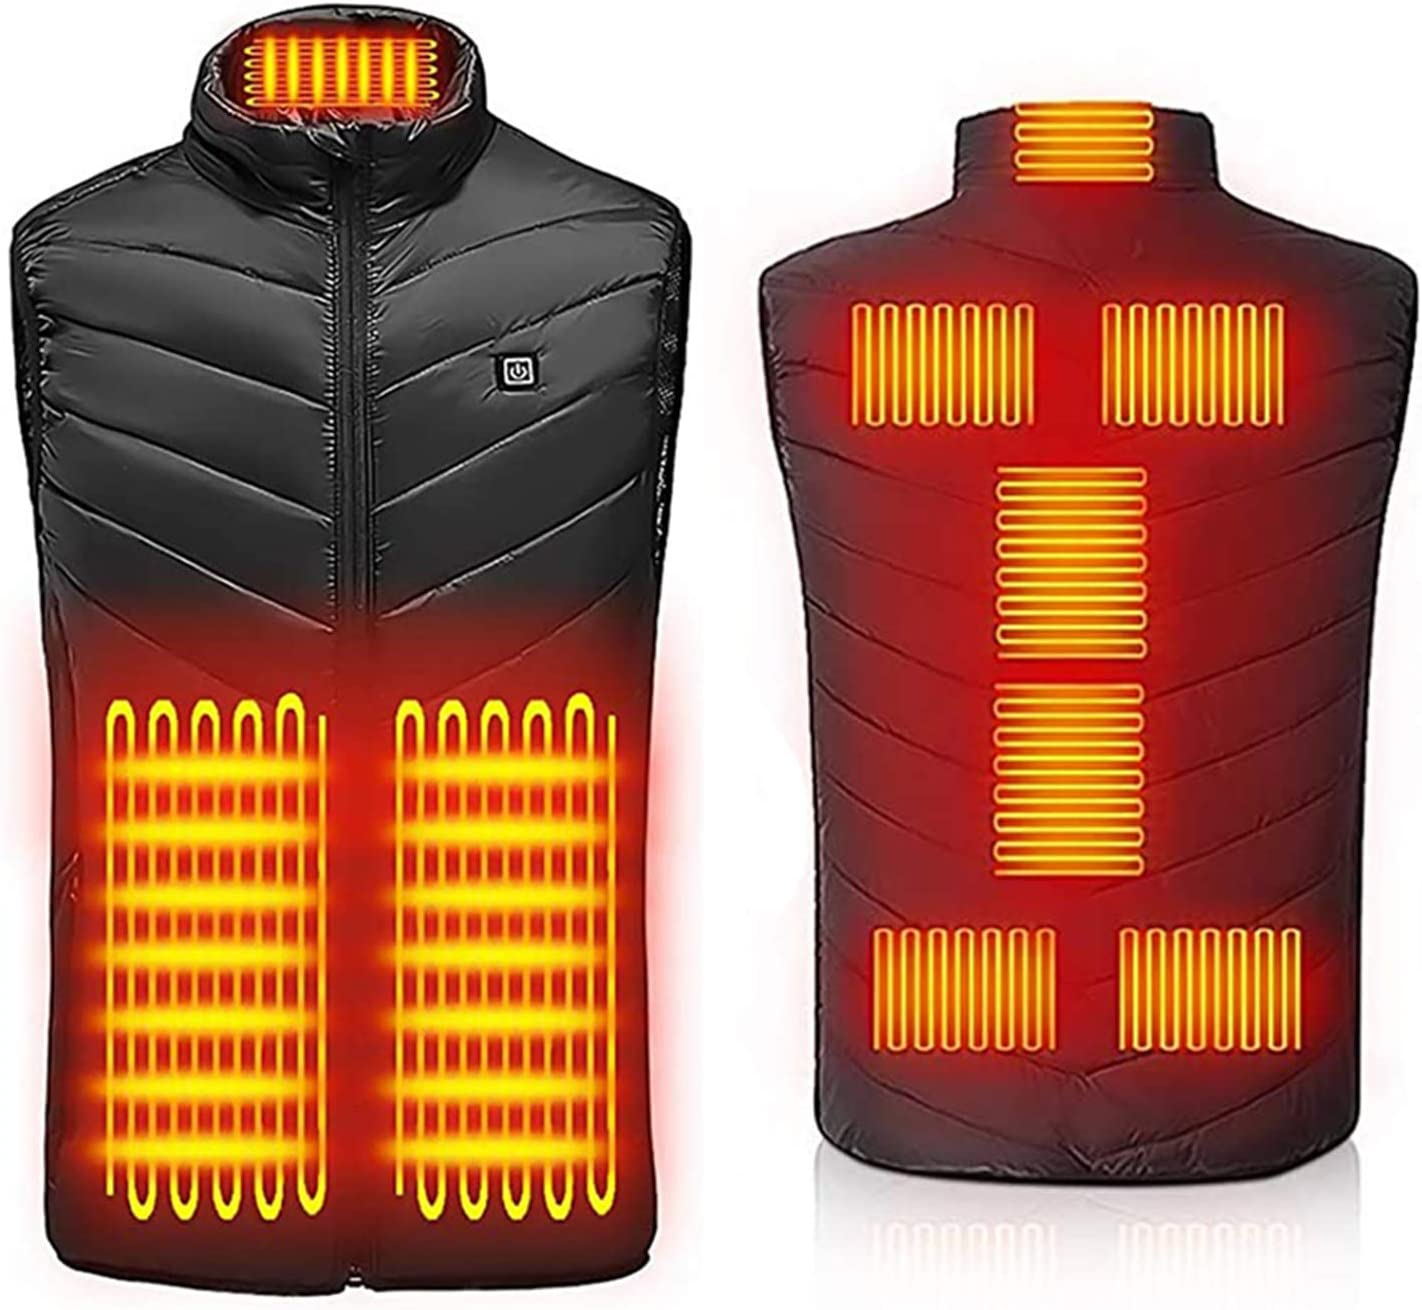 USB Rechargeable Heated Waistcoat Winter Body Warmer Jacket Heated Gilet Coat for Outdoor Activities Electric Heated Vest Power Bank Not Included